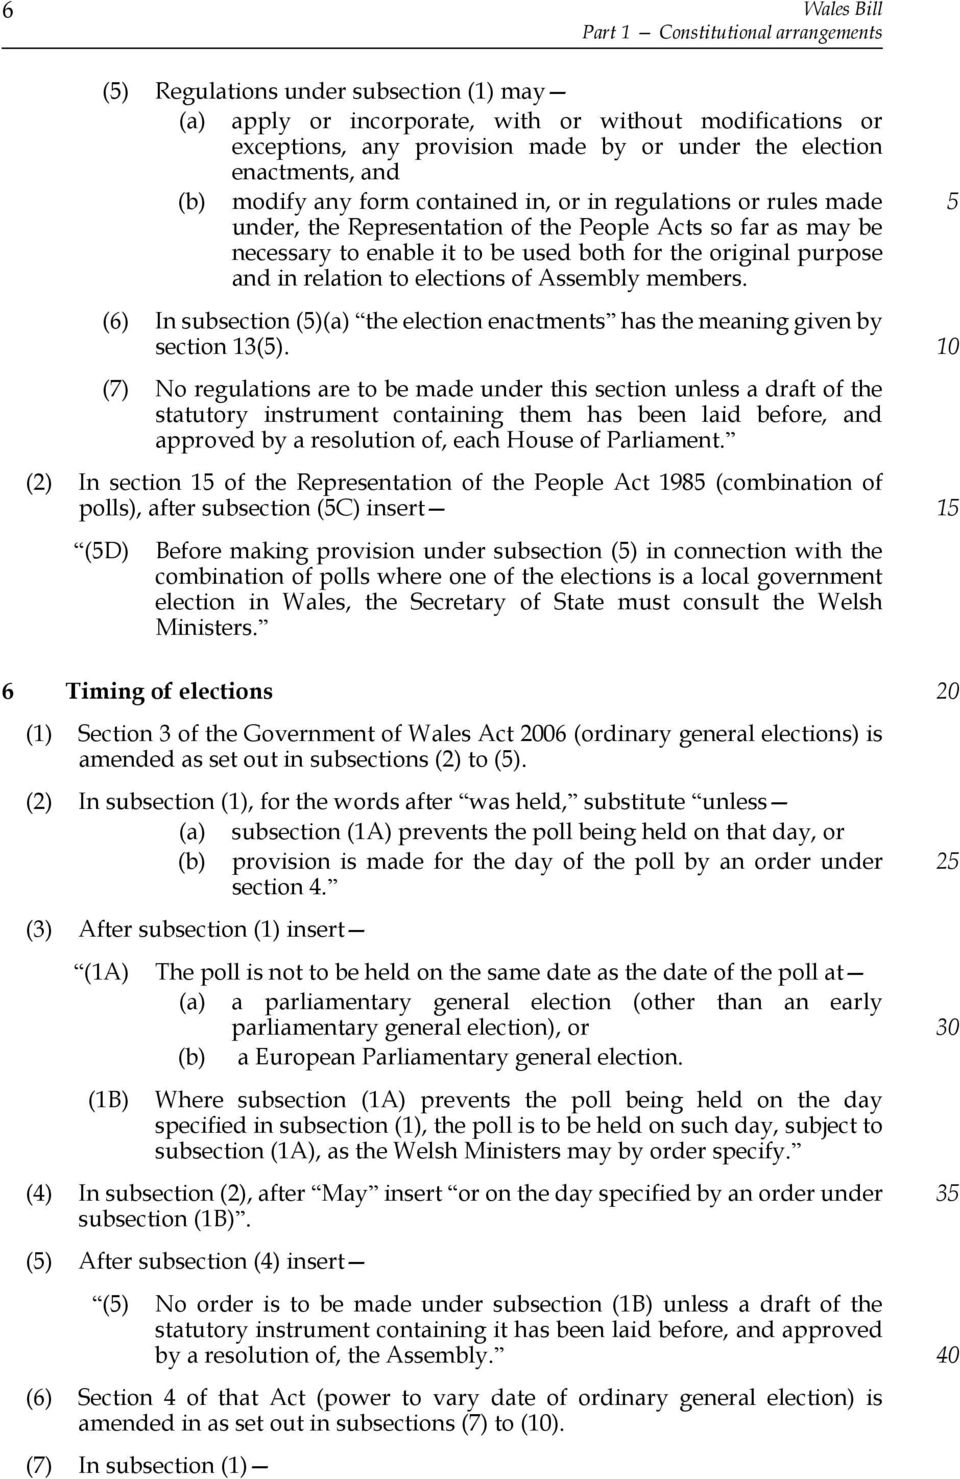 original purpose and in relation to elections of Assembly members. (6) In subsection ()(a) the election enactments has the meaning given by section 13().